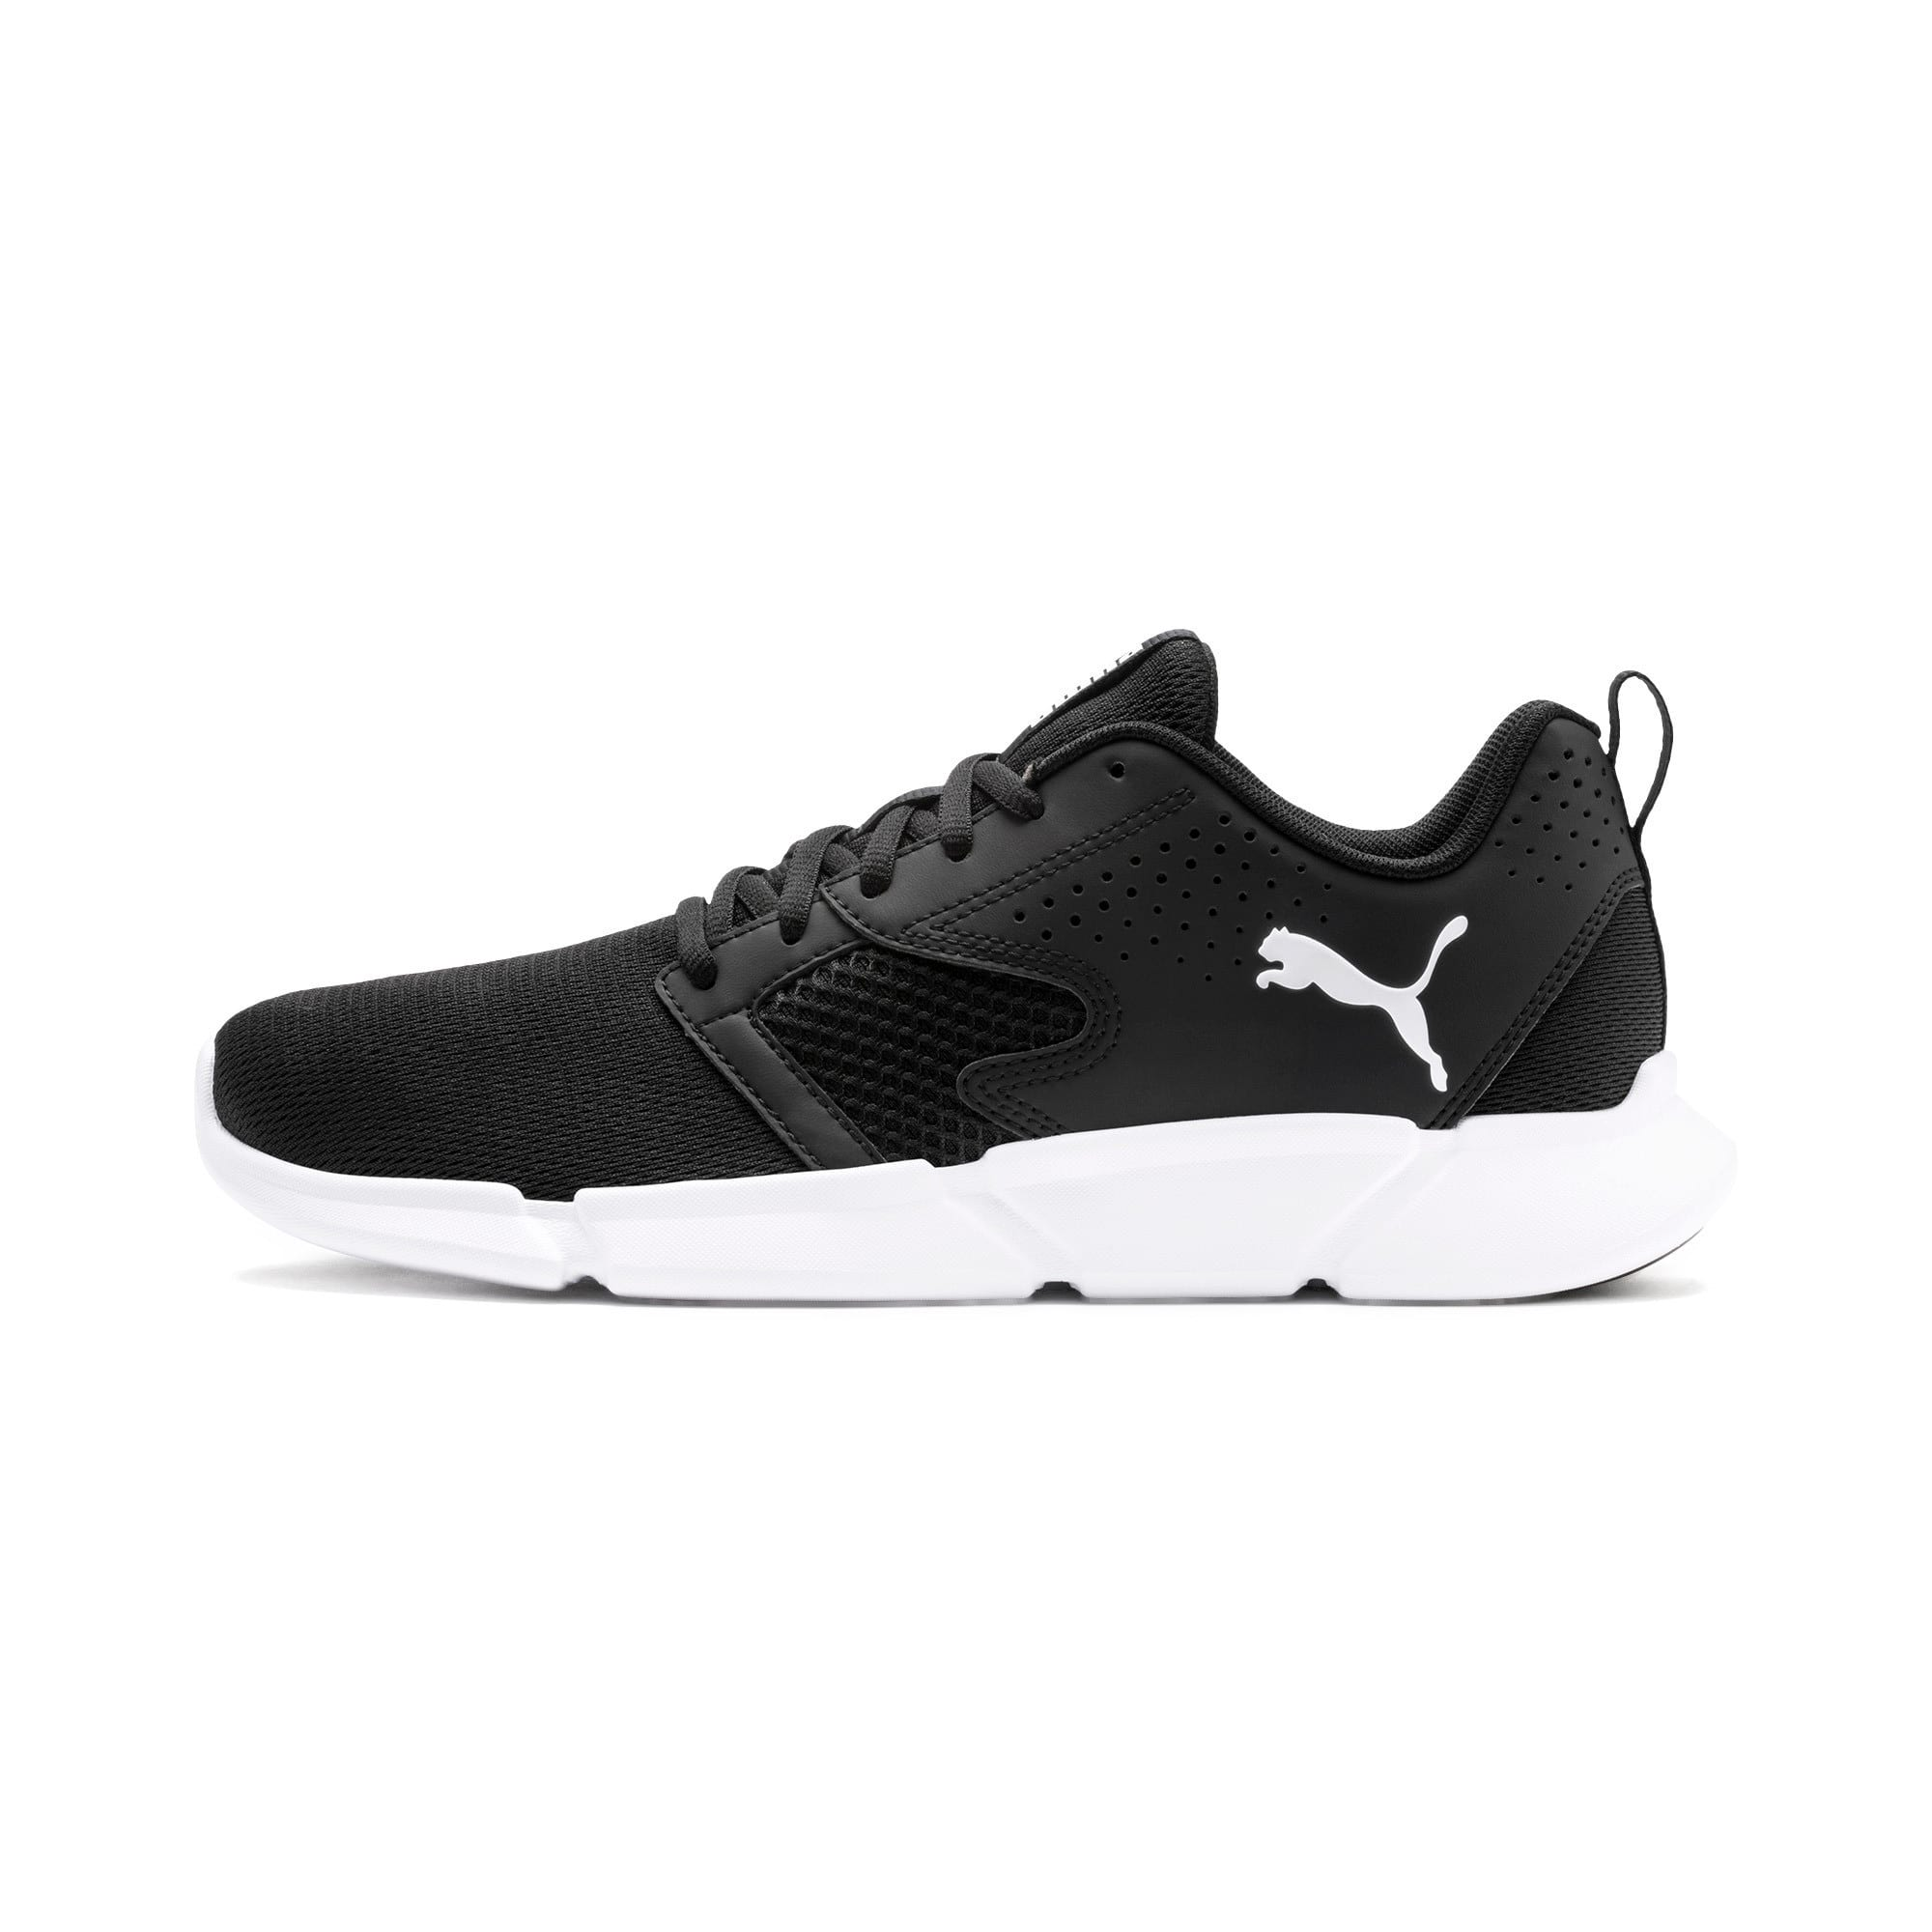 Thumbnail 1 of INTERFLEX Modern Running Shoes, Puma Black-Puma White, medium-IND